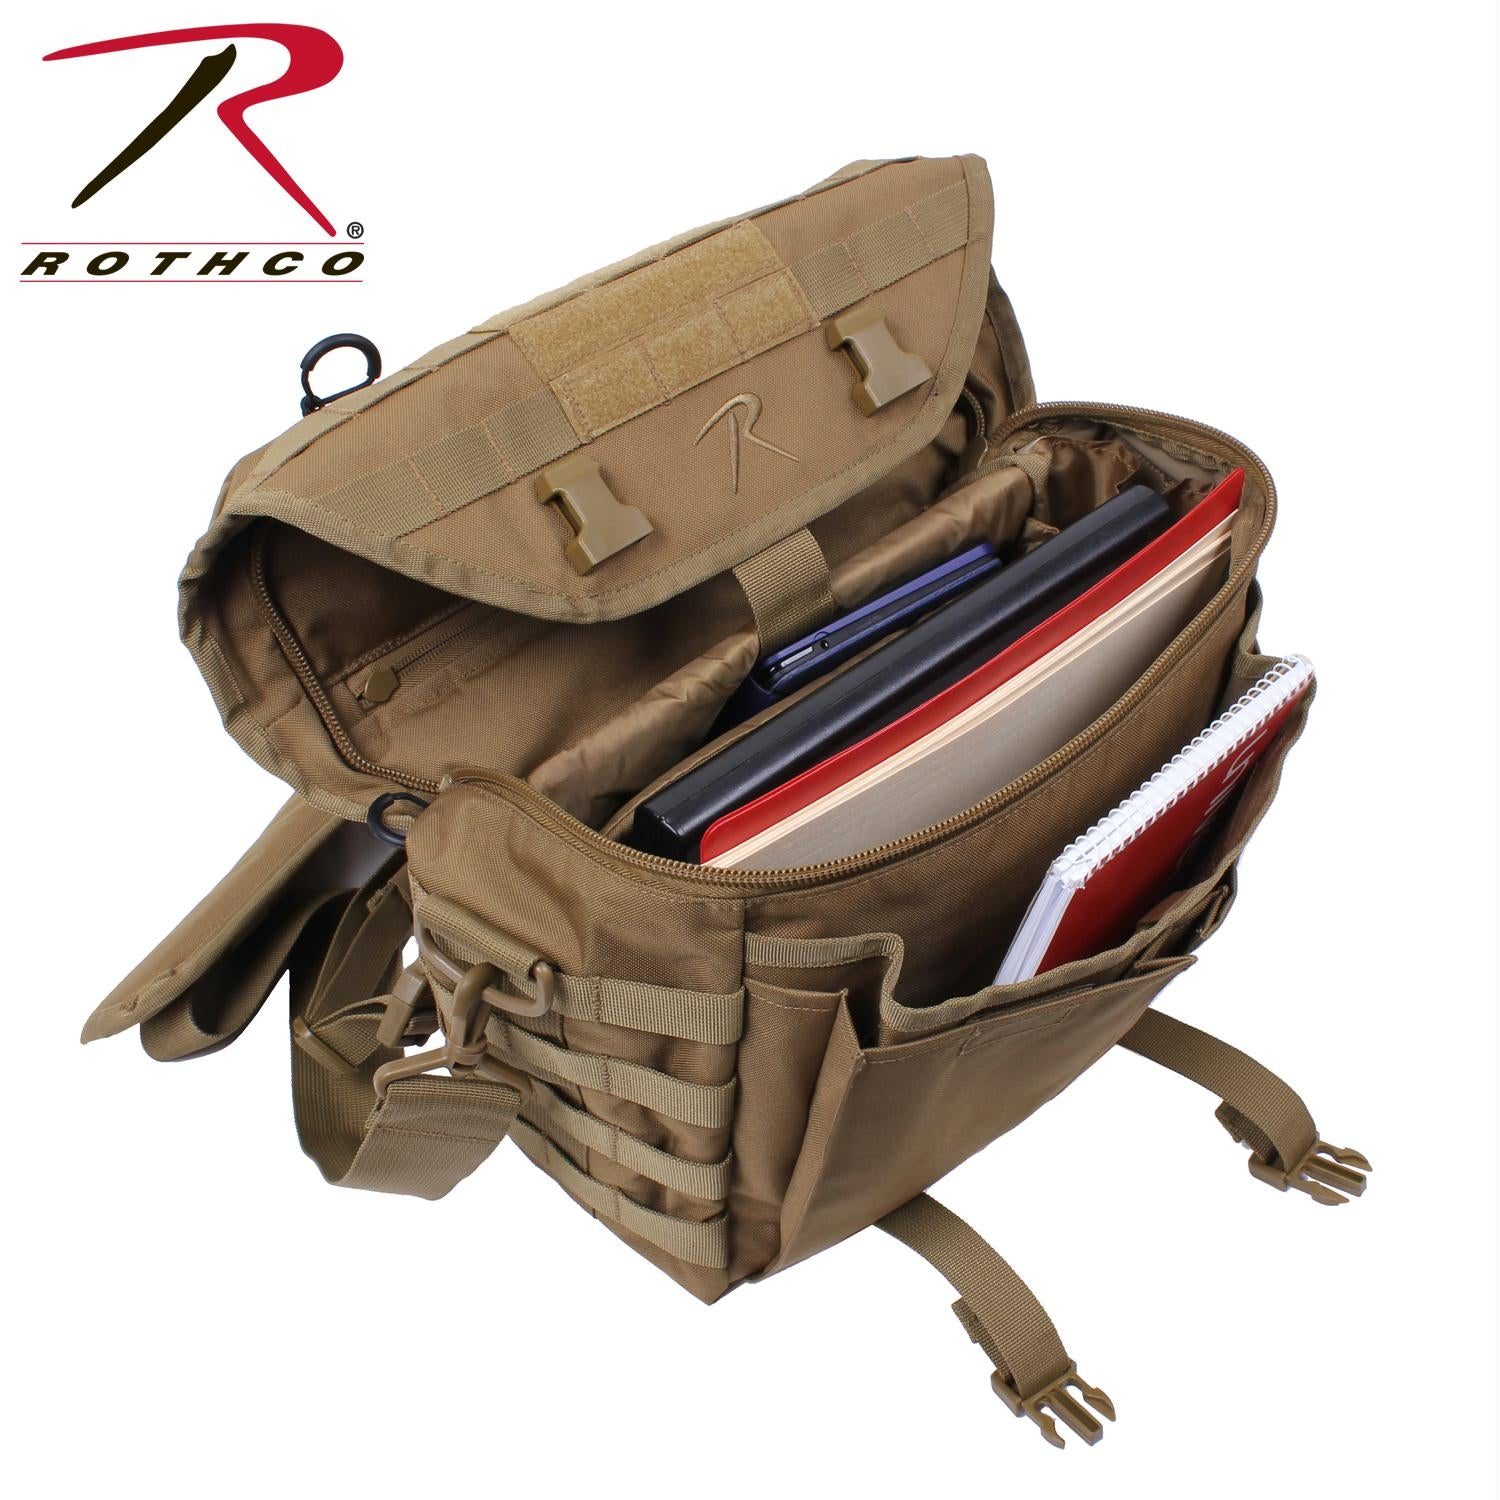 Rothco Covert Dispatch Tactical Shoulder Bag - Coyote Brown